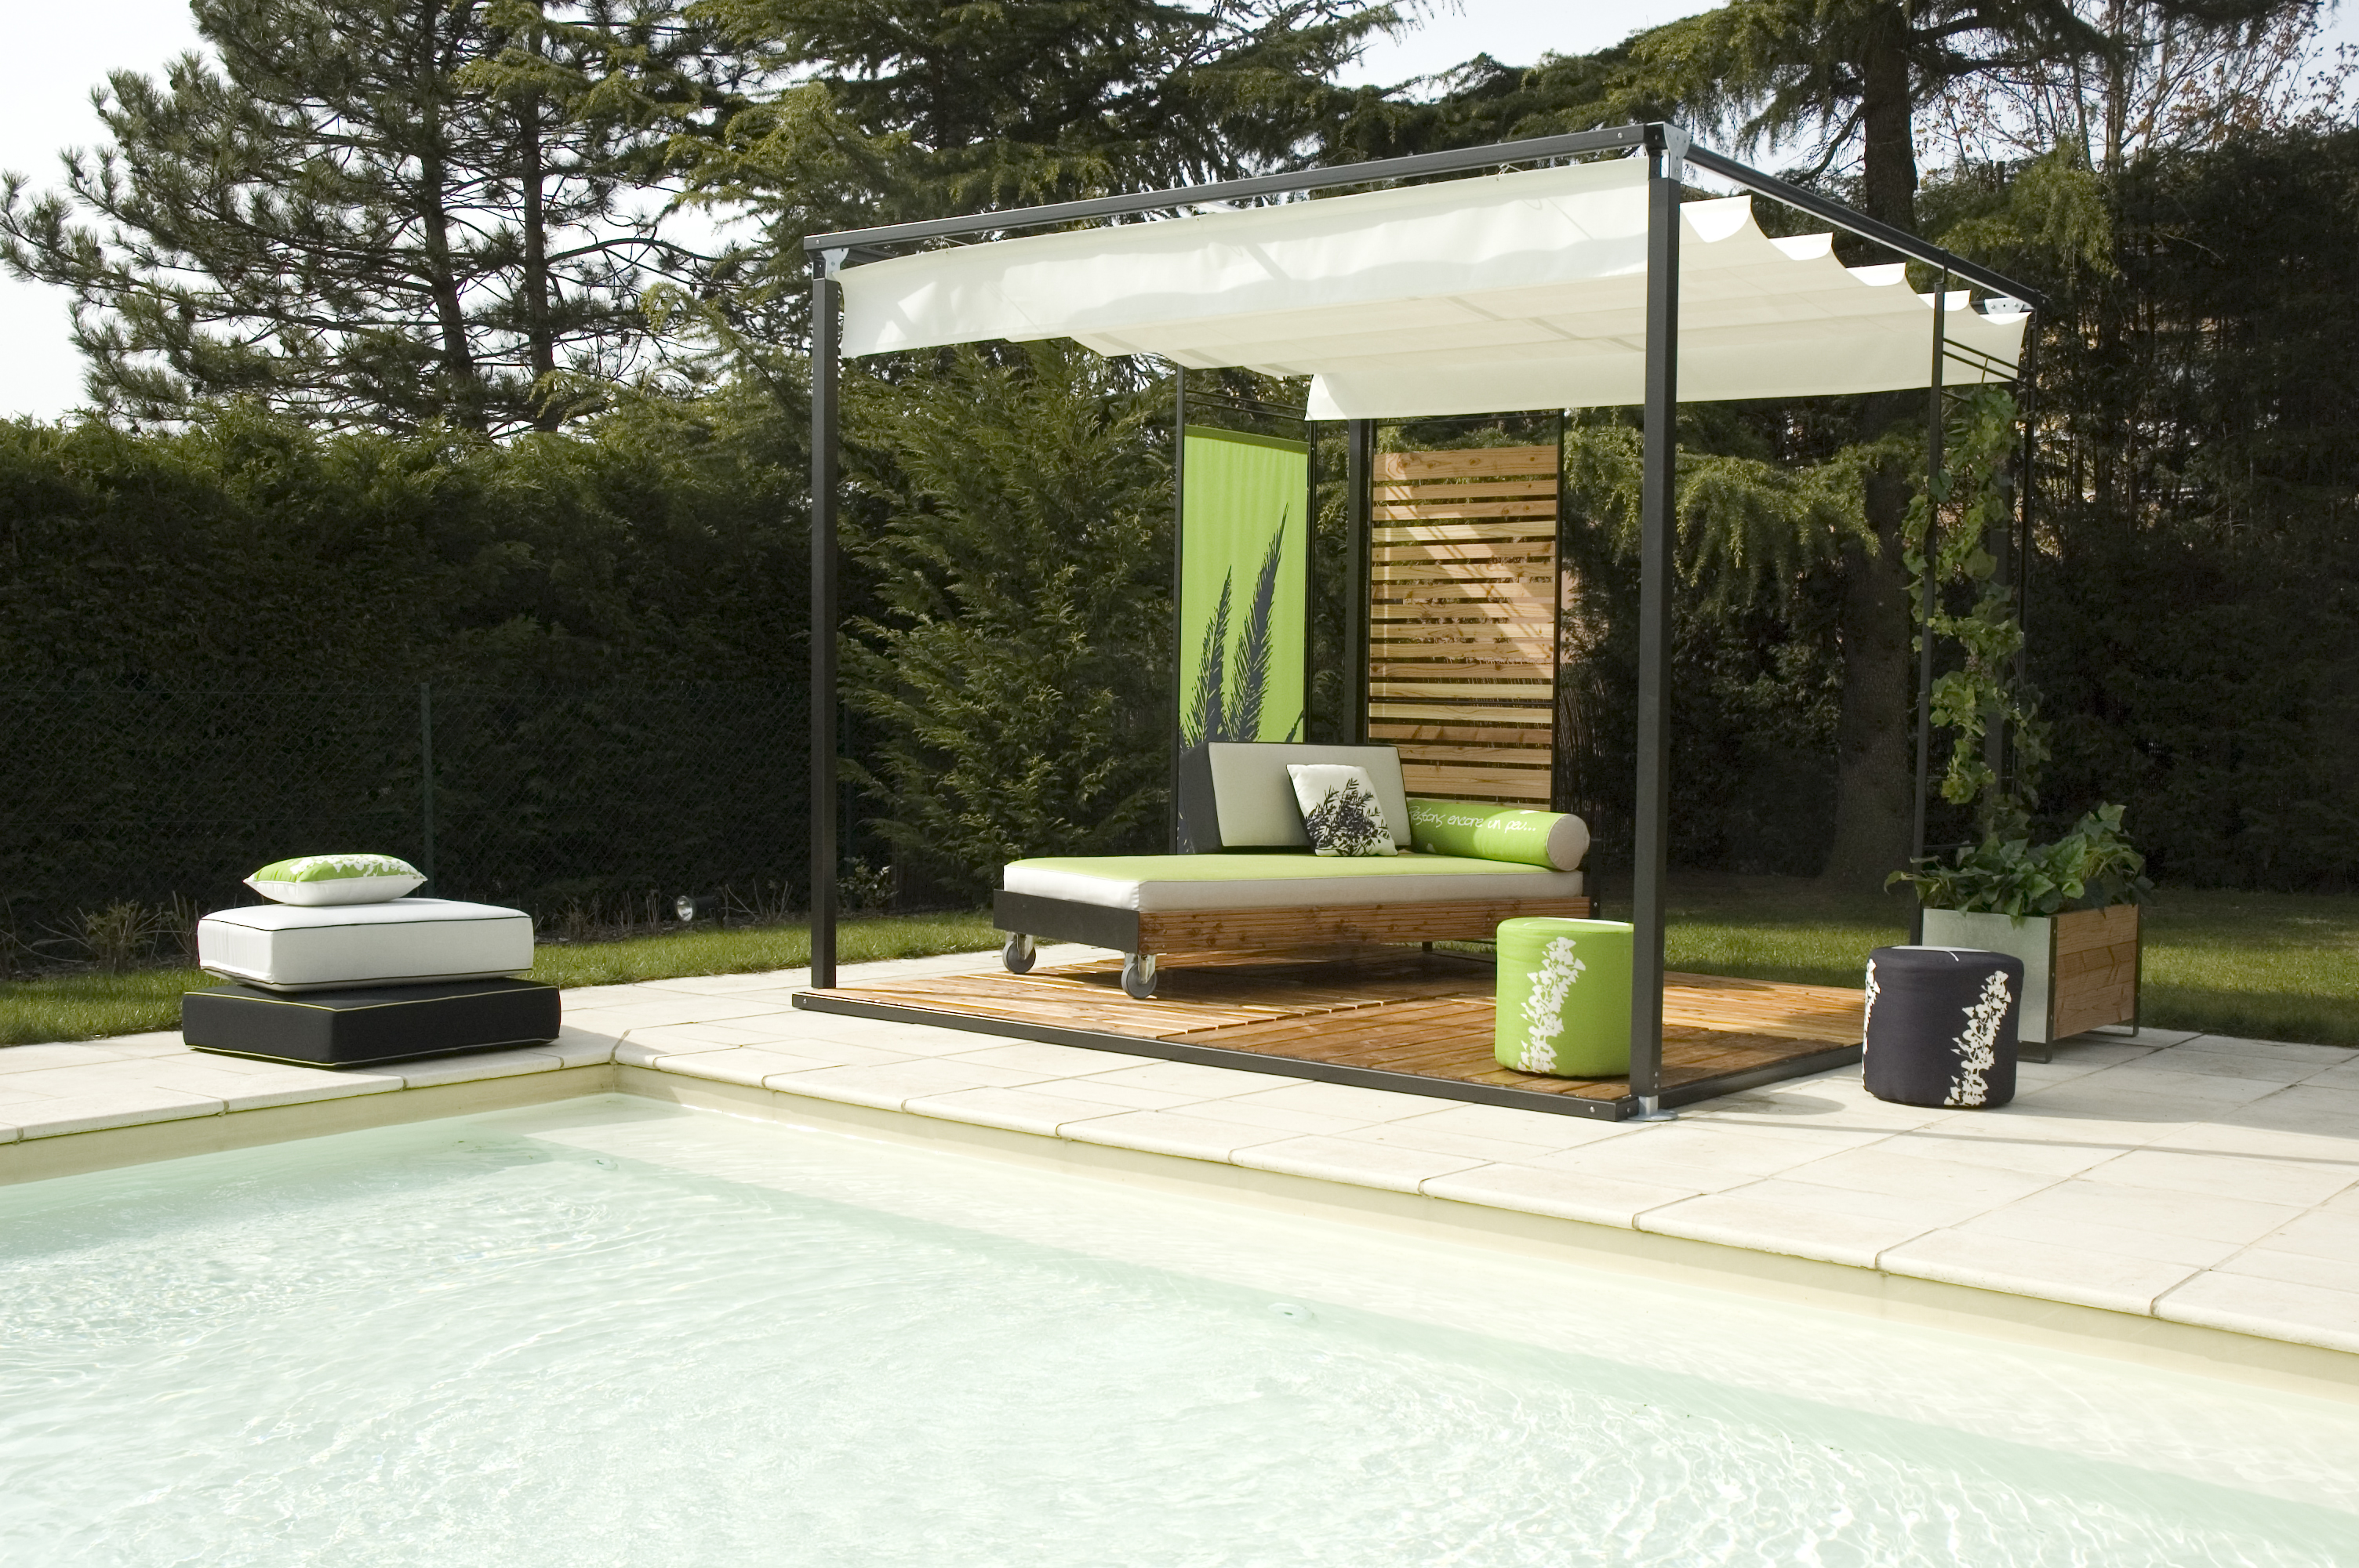 pergola acier sur mesure l 39 originale design sobre modularit totale. Black Bedroom Furniture Sets. Home Design Ideas